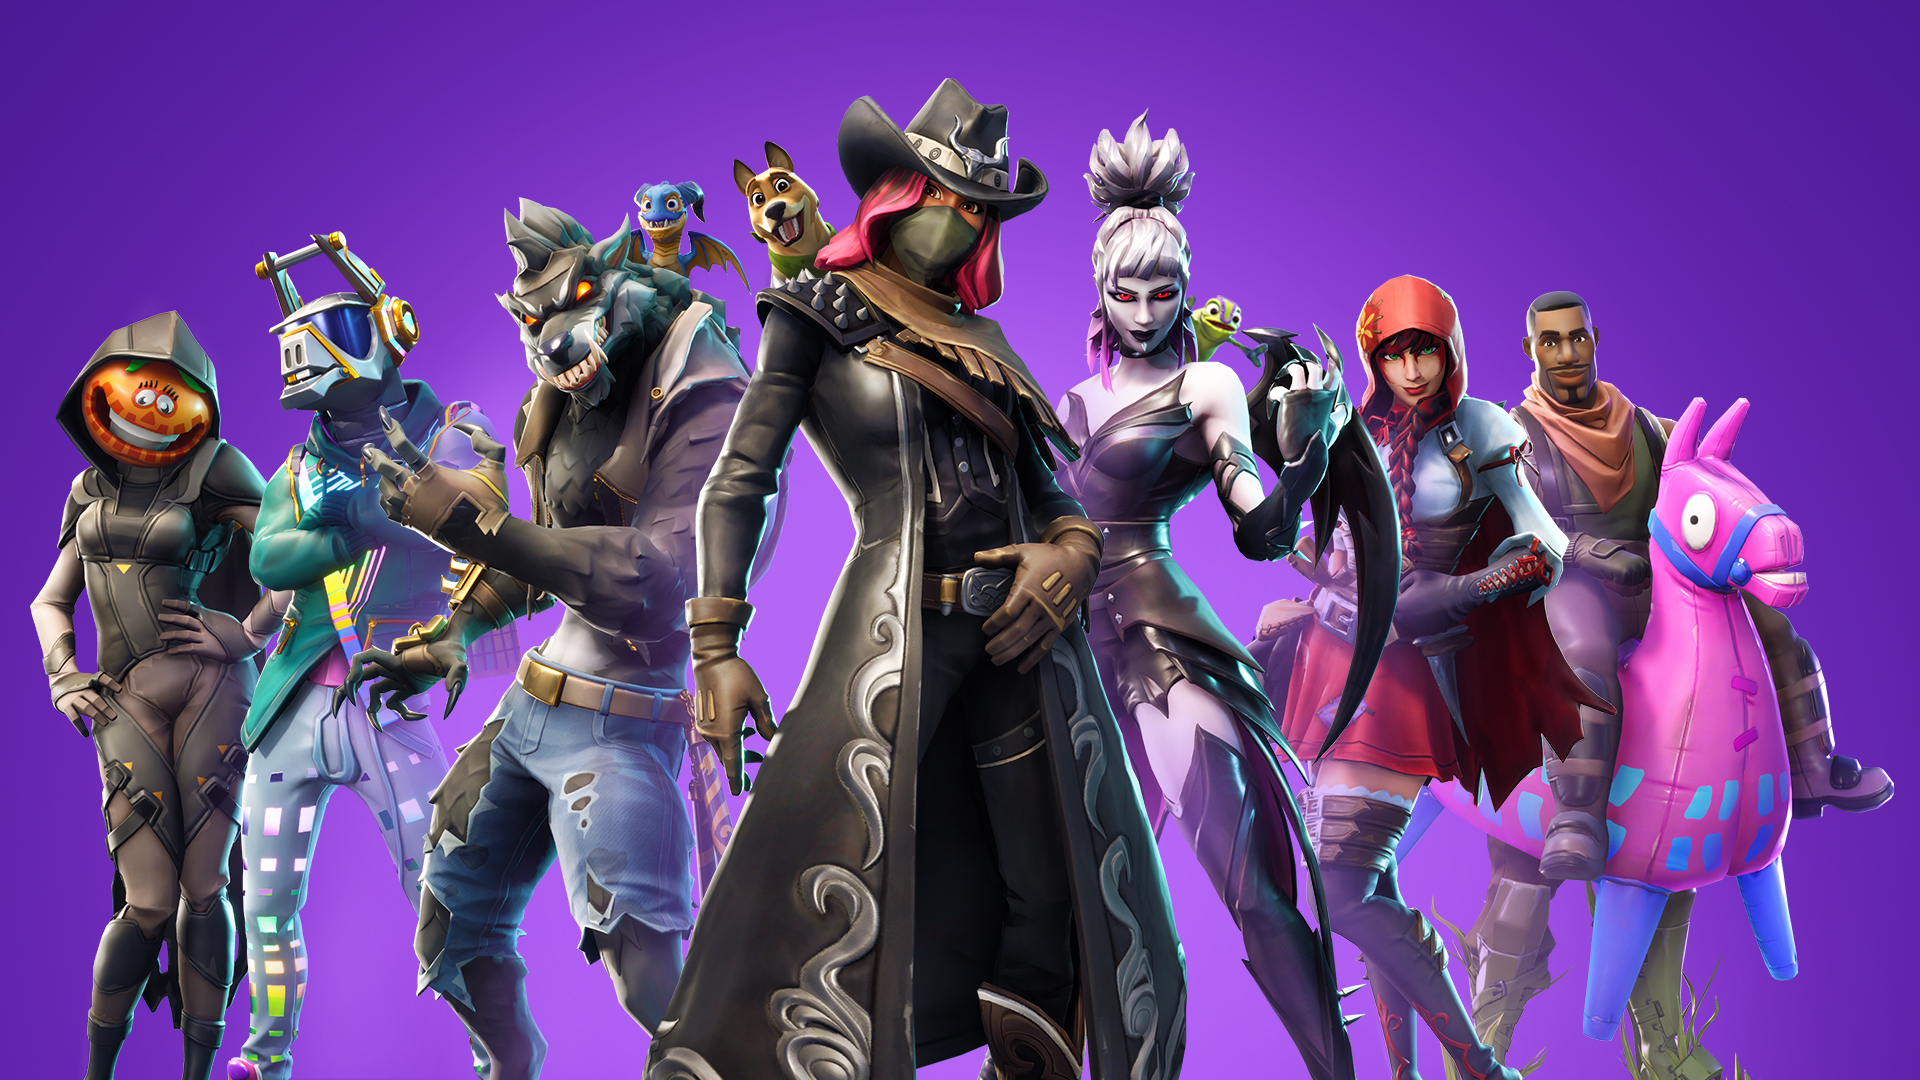 'fortnite' Gets Spooky For Season 6 With Horrorbased